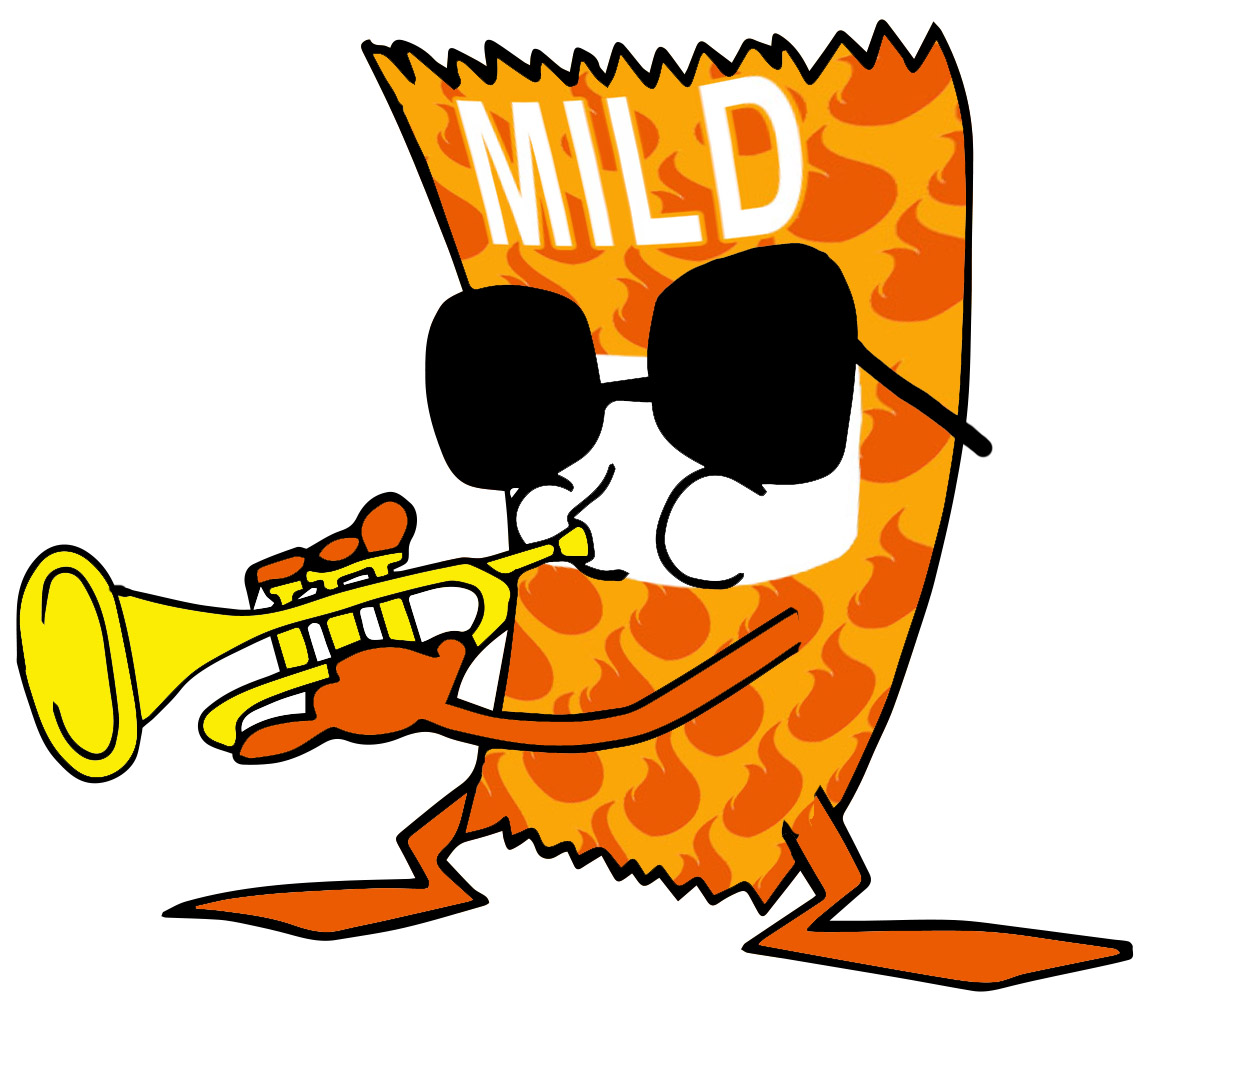 Much like jazz itself Milds Davis is an acquired taste, good for some and passable for others.